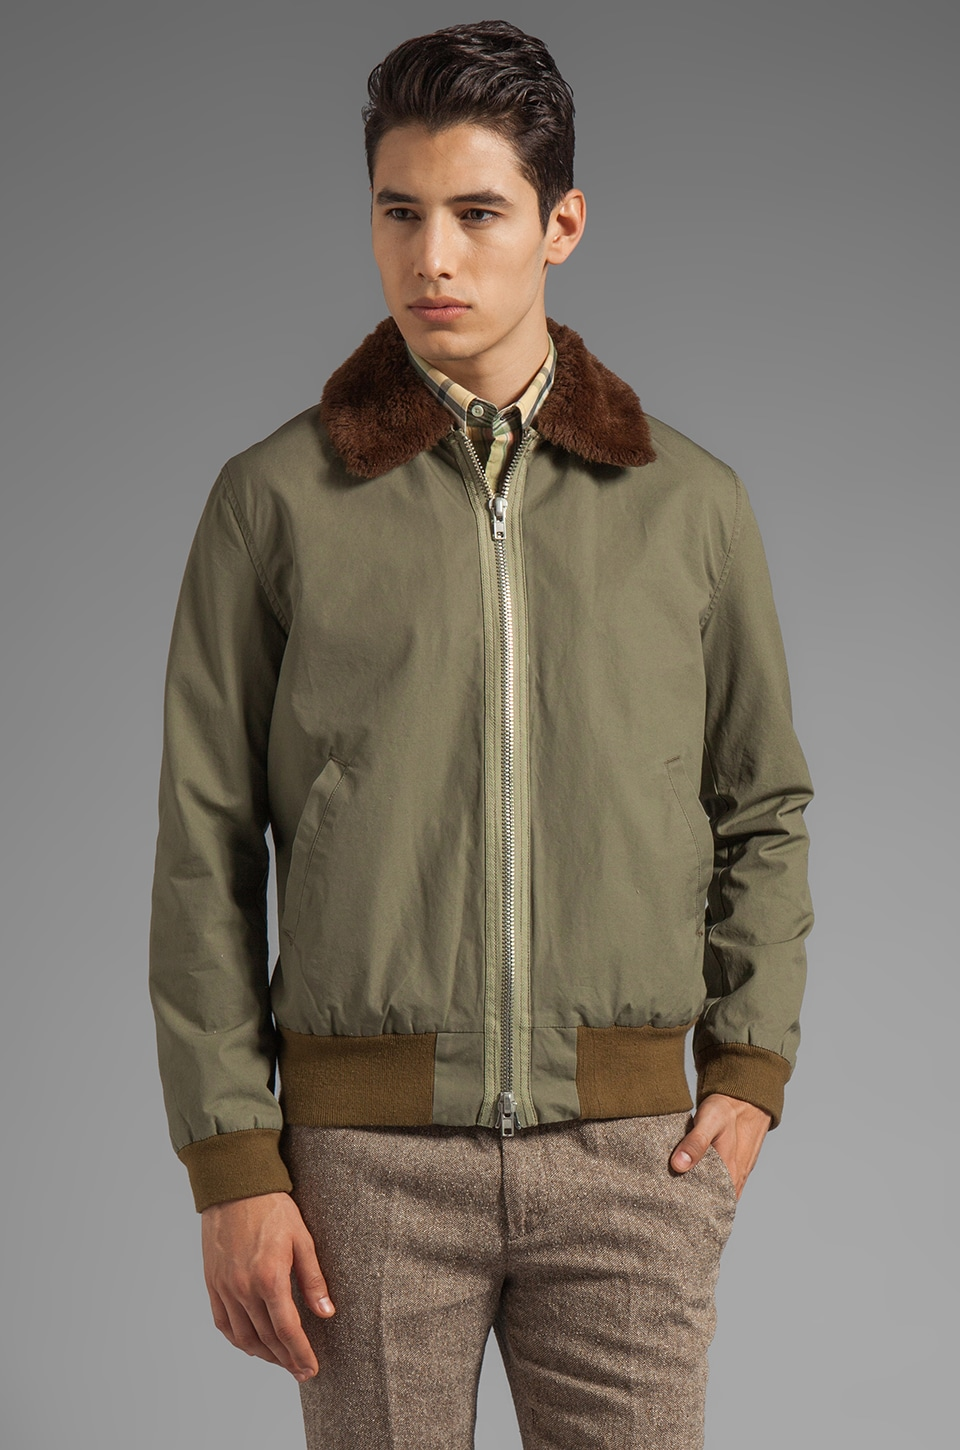 GANT Rugger The Rum Runner Jacket in Field Green